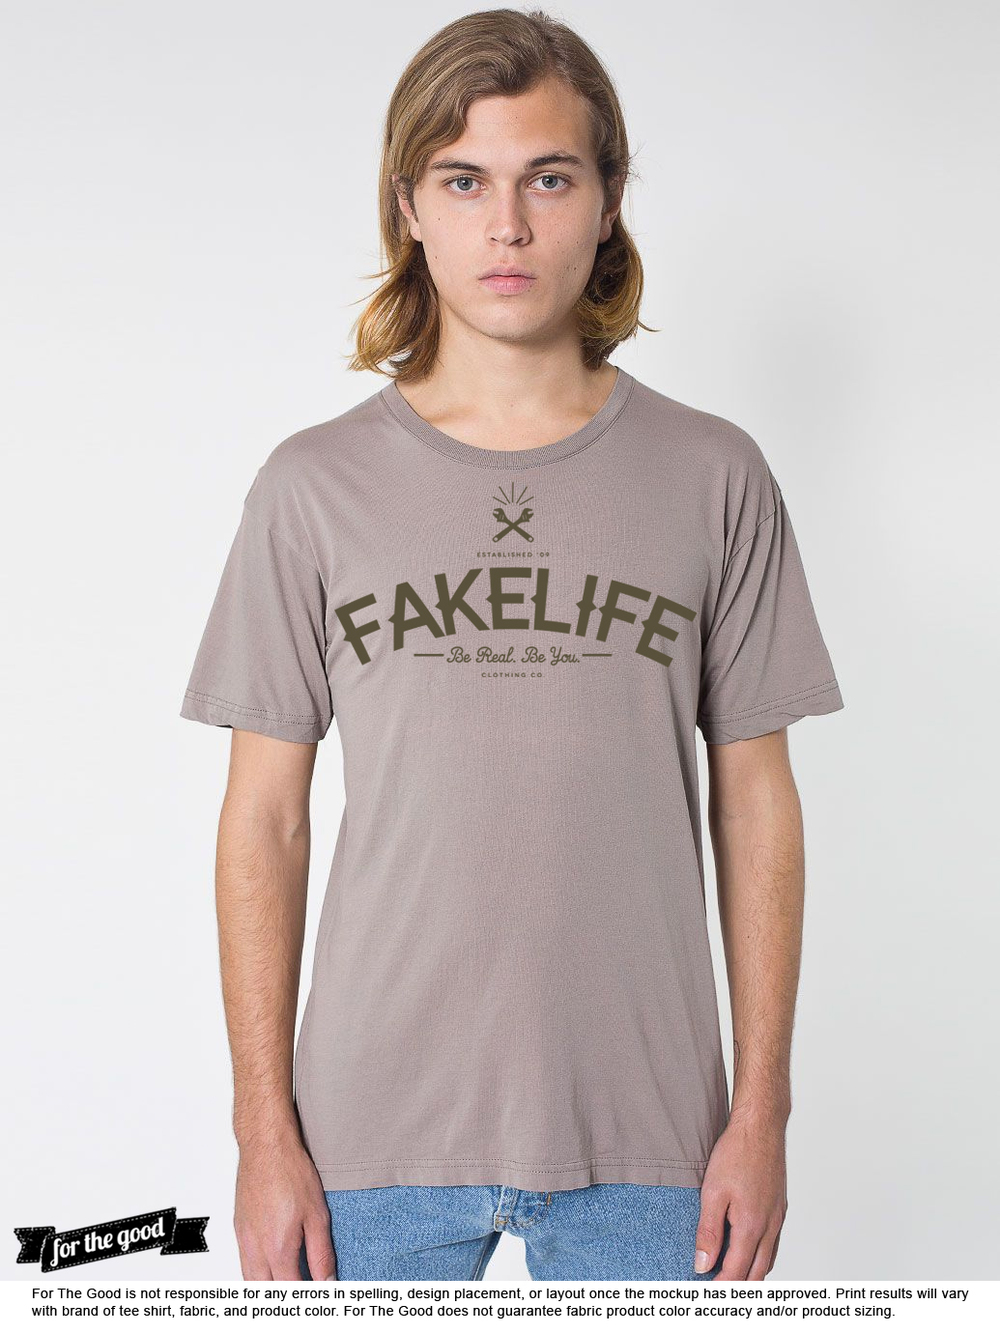 apparel concept | Fakelife Clothing CO. | PA